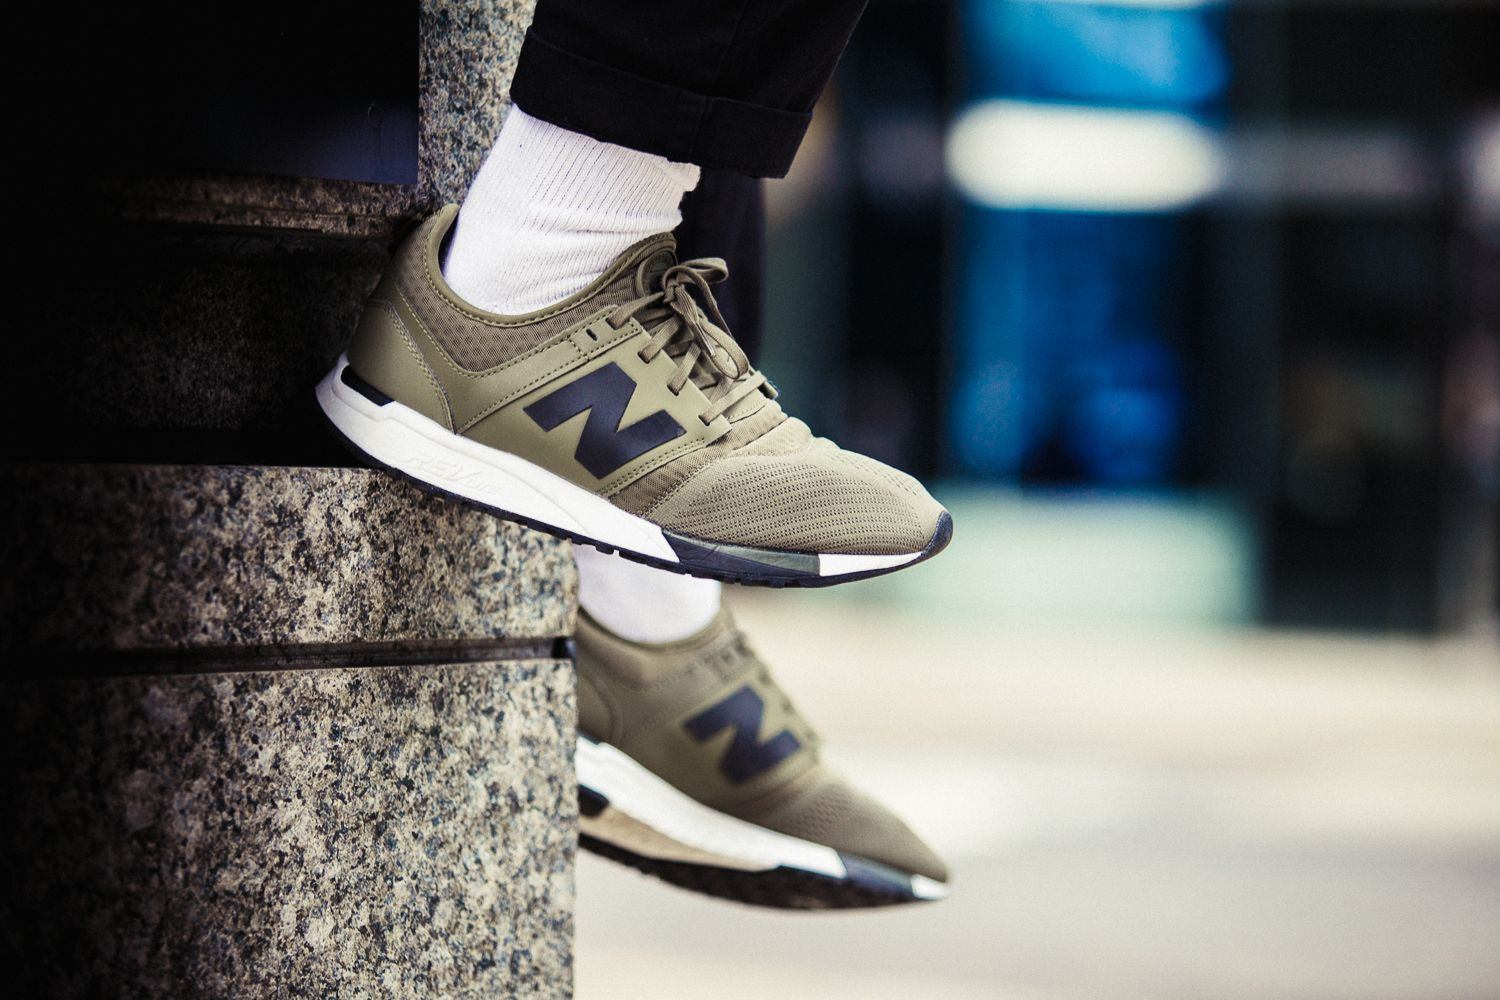 48d75d7b0b782 On Feet: Reviewing the Latest New Balance 247 Sport